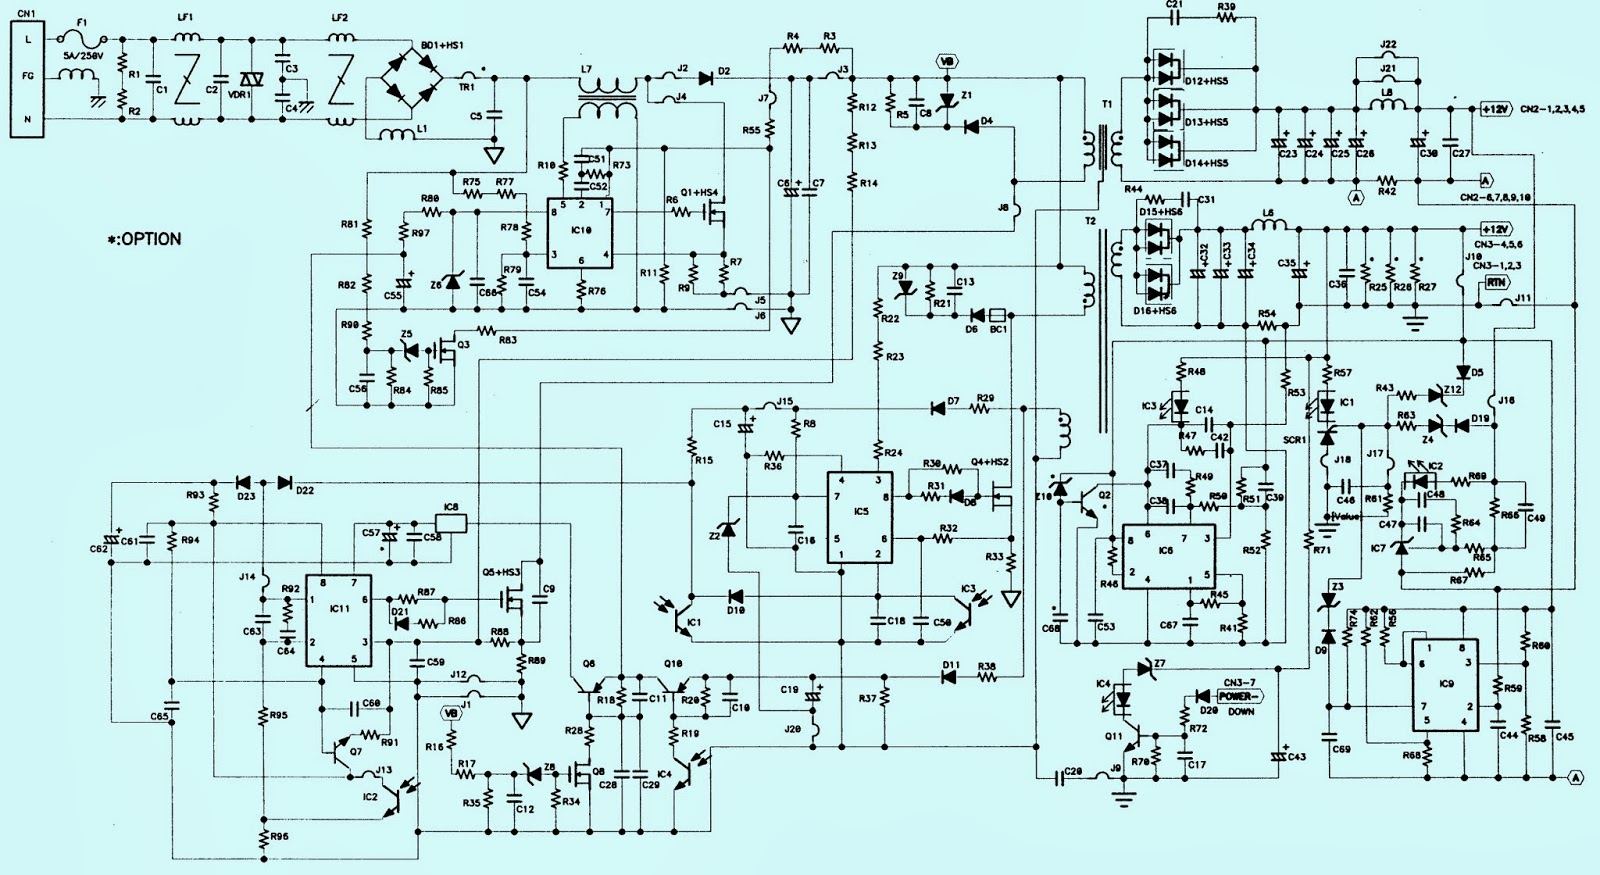 untitled.bmp toshiba 27wl46 power supply [smps] schematic (circuit diagram toshiba motor wiring diagram at mifinder.co